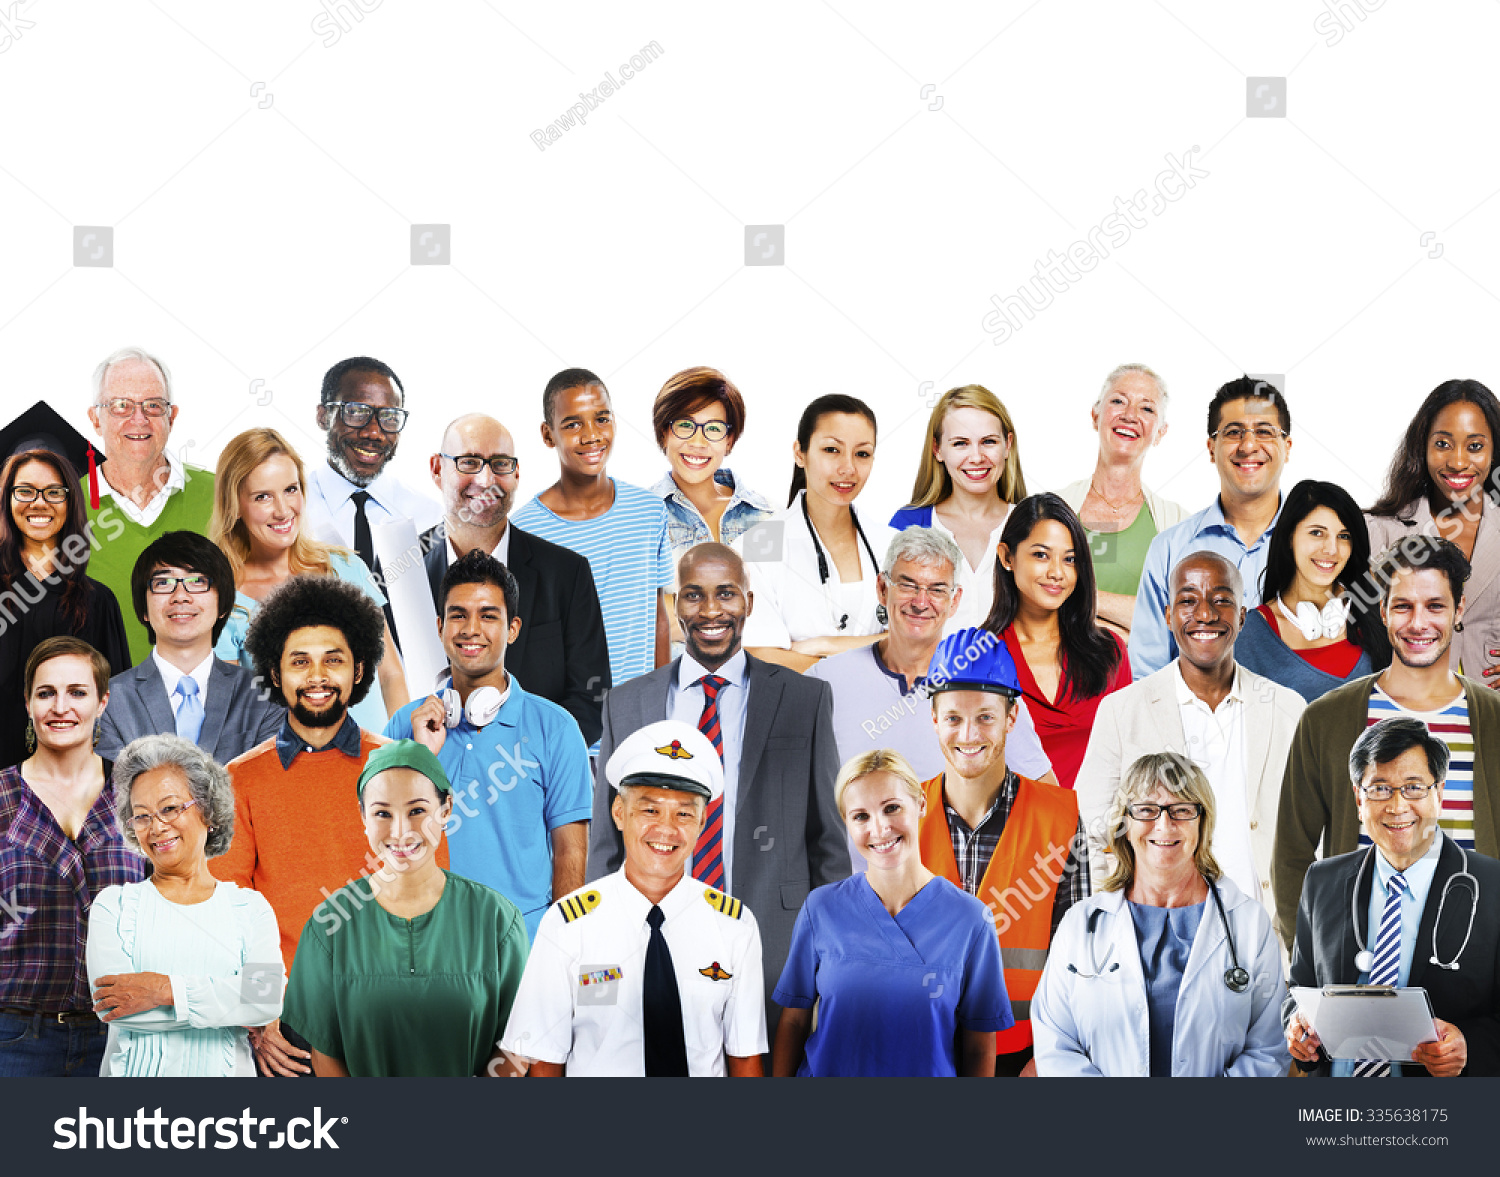 diverse people professional occupation society concept stock photo diverse people professional occupation society concept